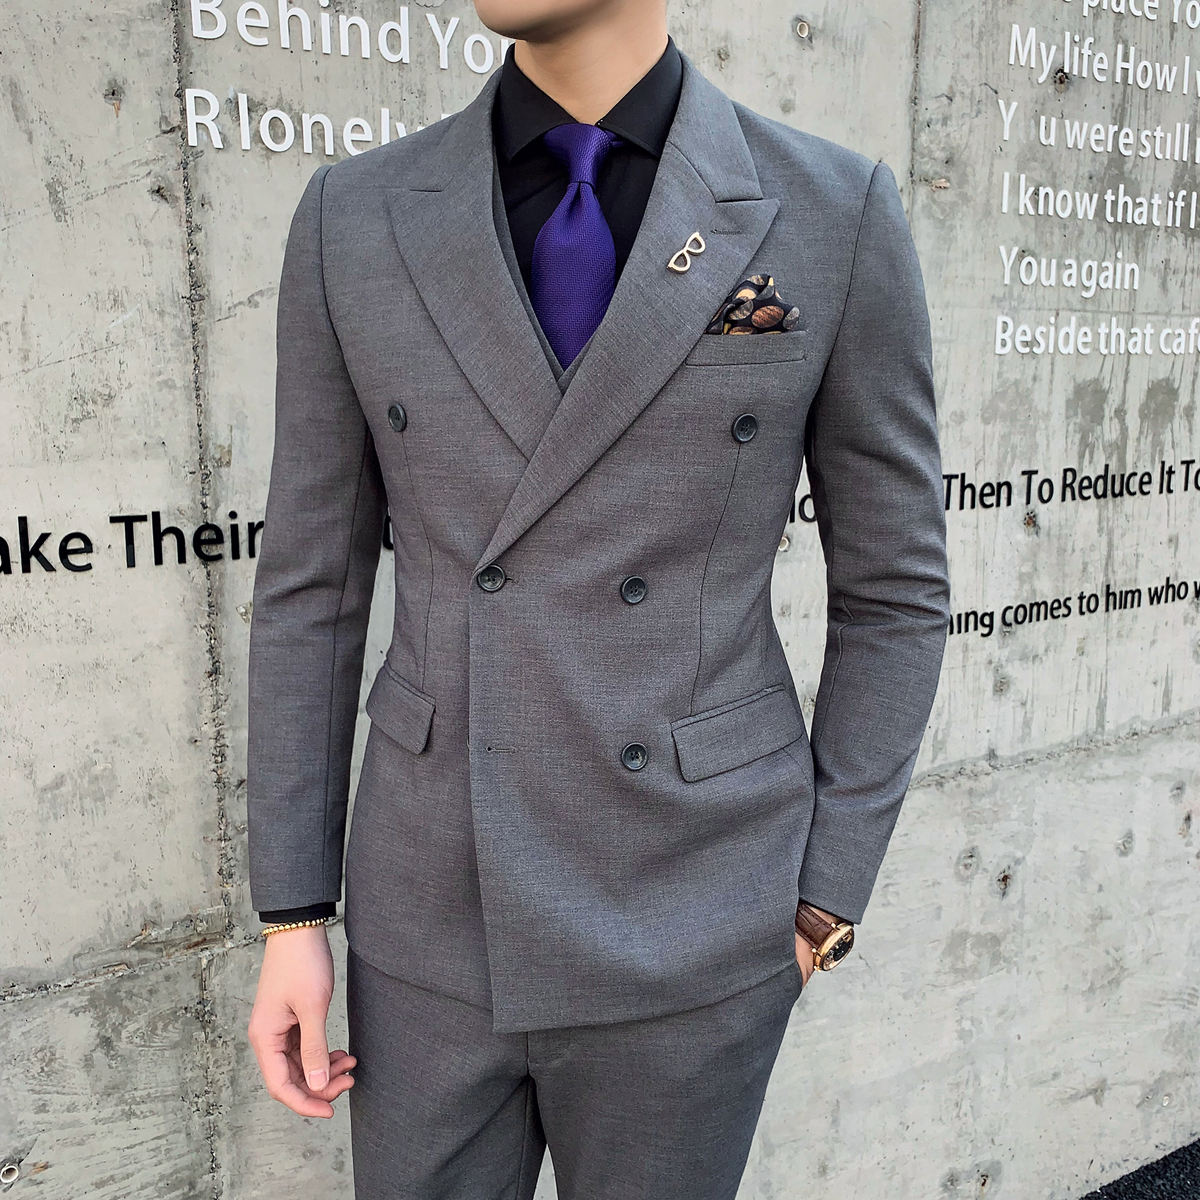 Jackets+Vest+Pants Suits Double-breasted Groom Wedding Dress Formal Suits Set High Quality Men Boutique Wool Casual Business